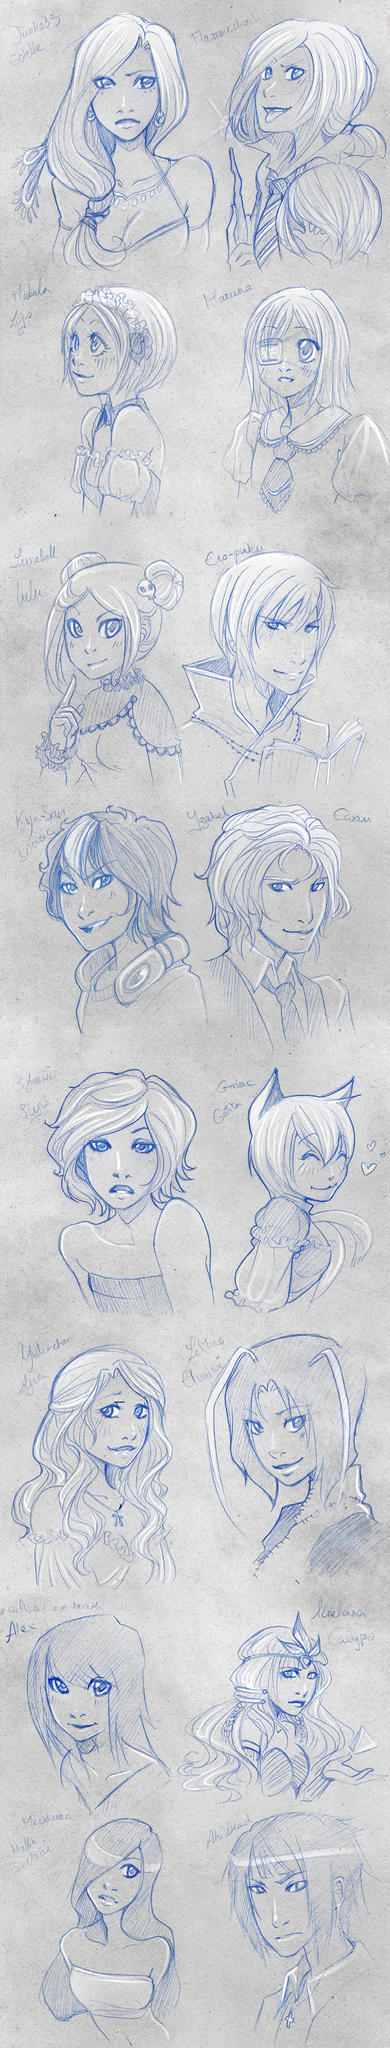 Lottery Sketch Portraits 6 by Moemai